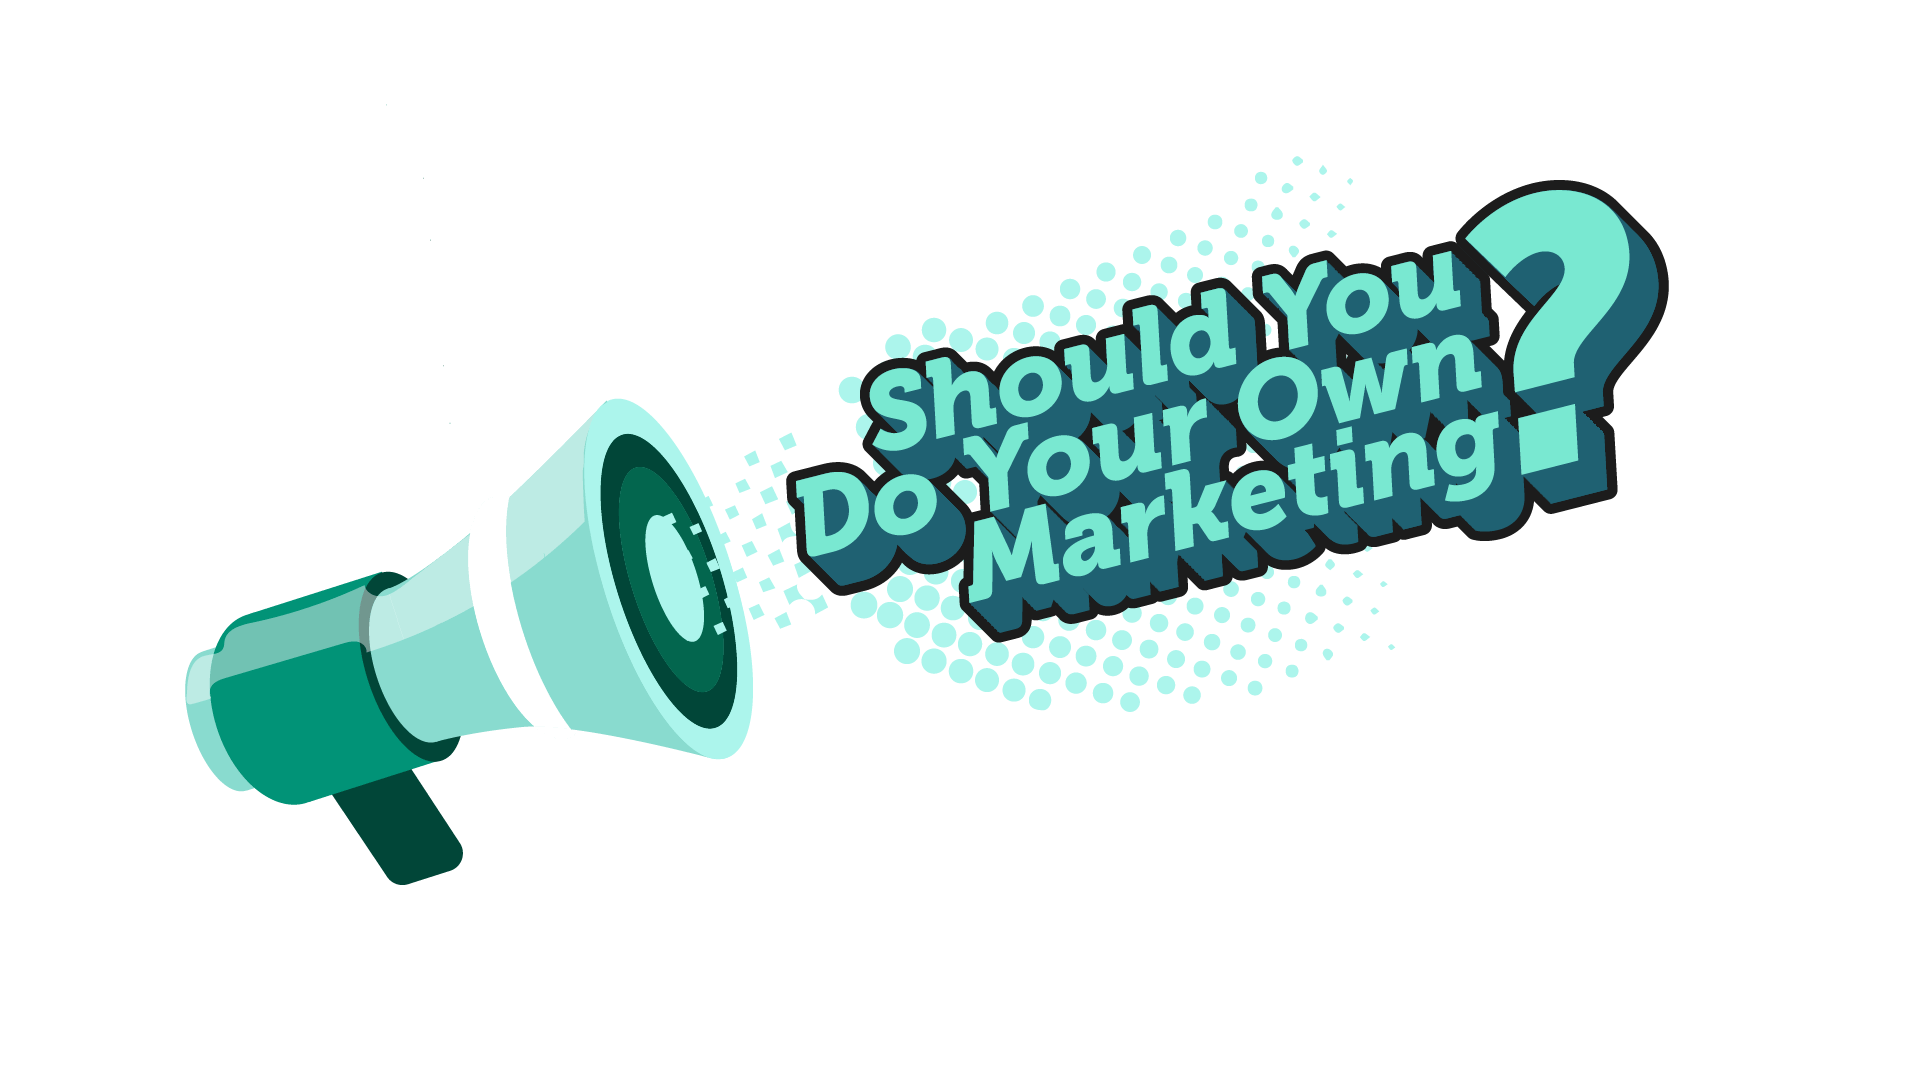 Should you do your own marketing